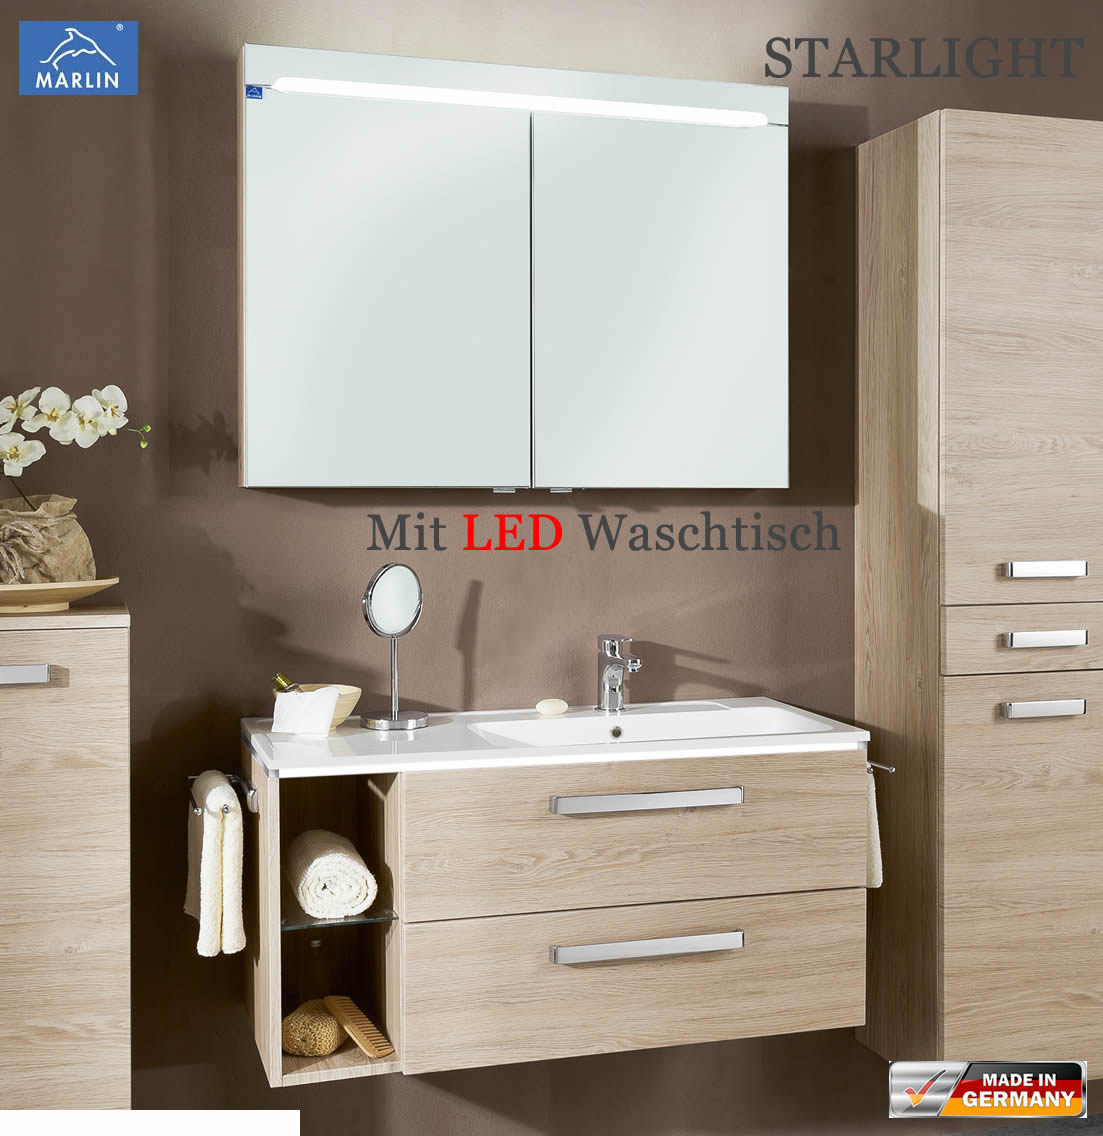 marlin starlight badm bel set 100 cm mit led waschtisch. Black Bedroom Furniture Sets. Home Design Ideas